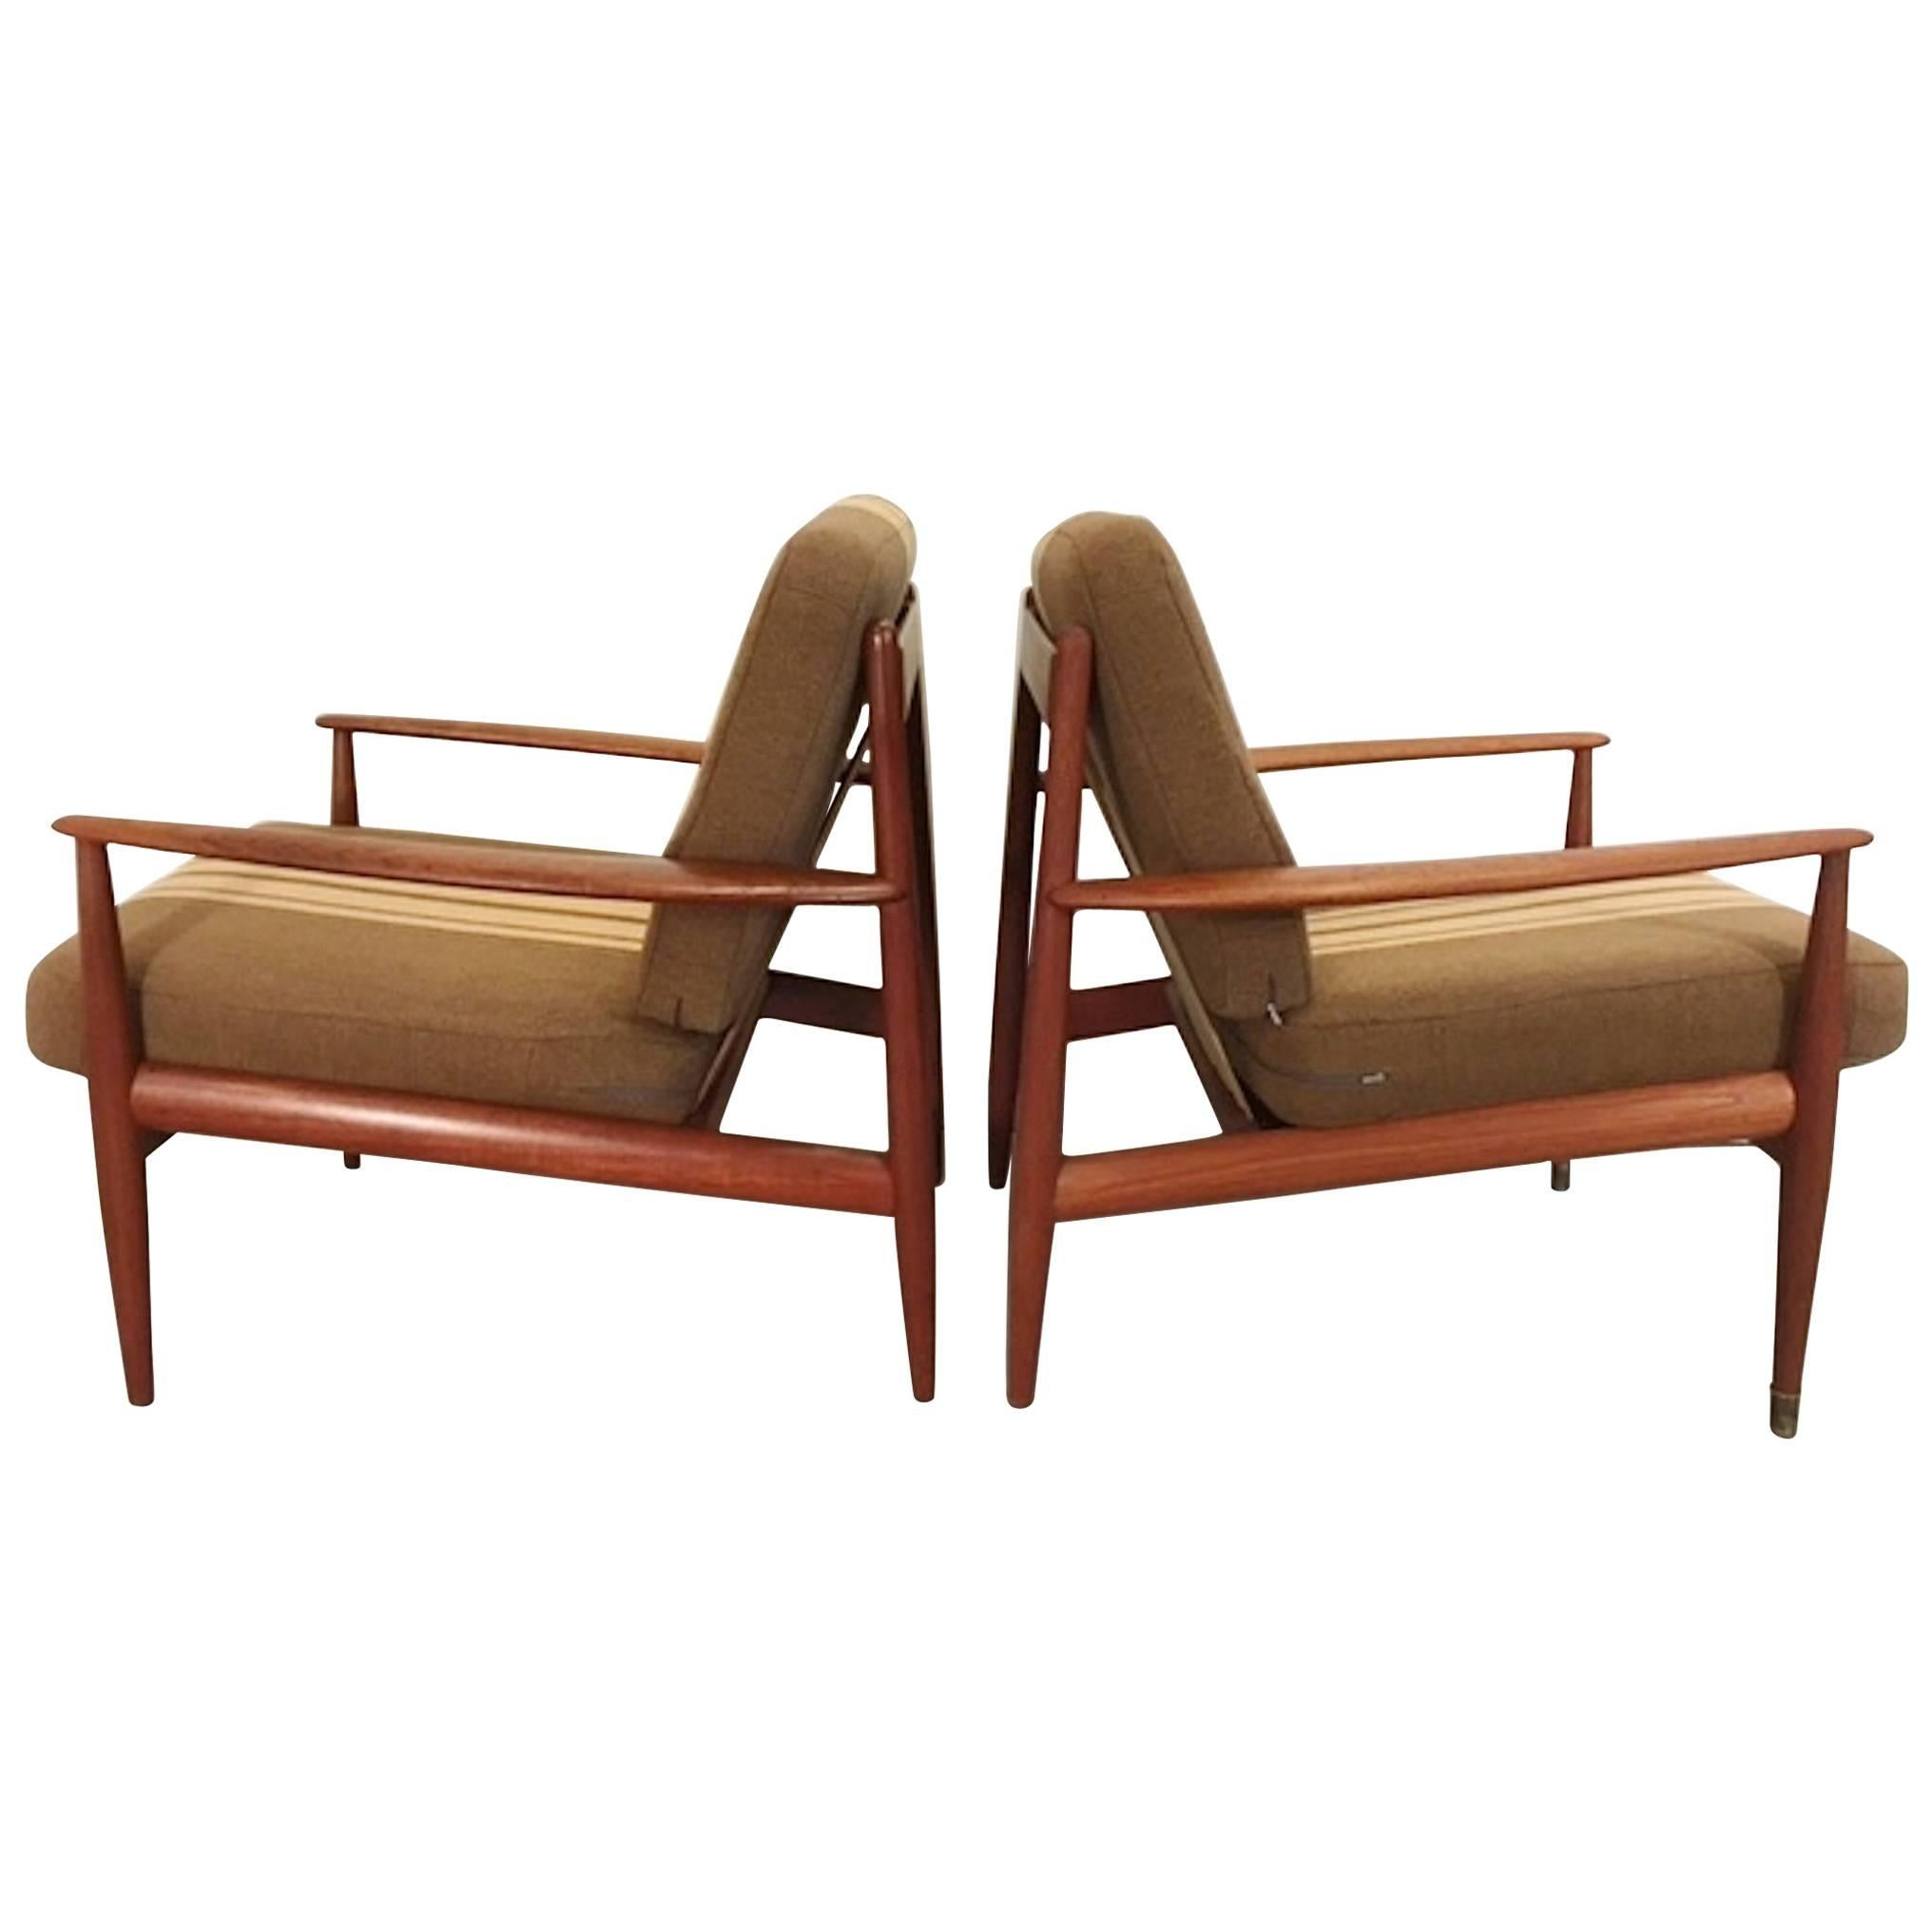 Pair of Teak Armchairs by Grete Jalk